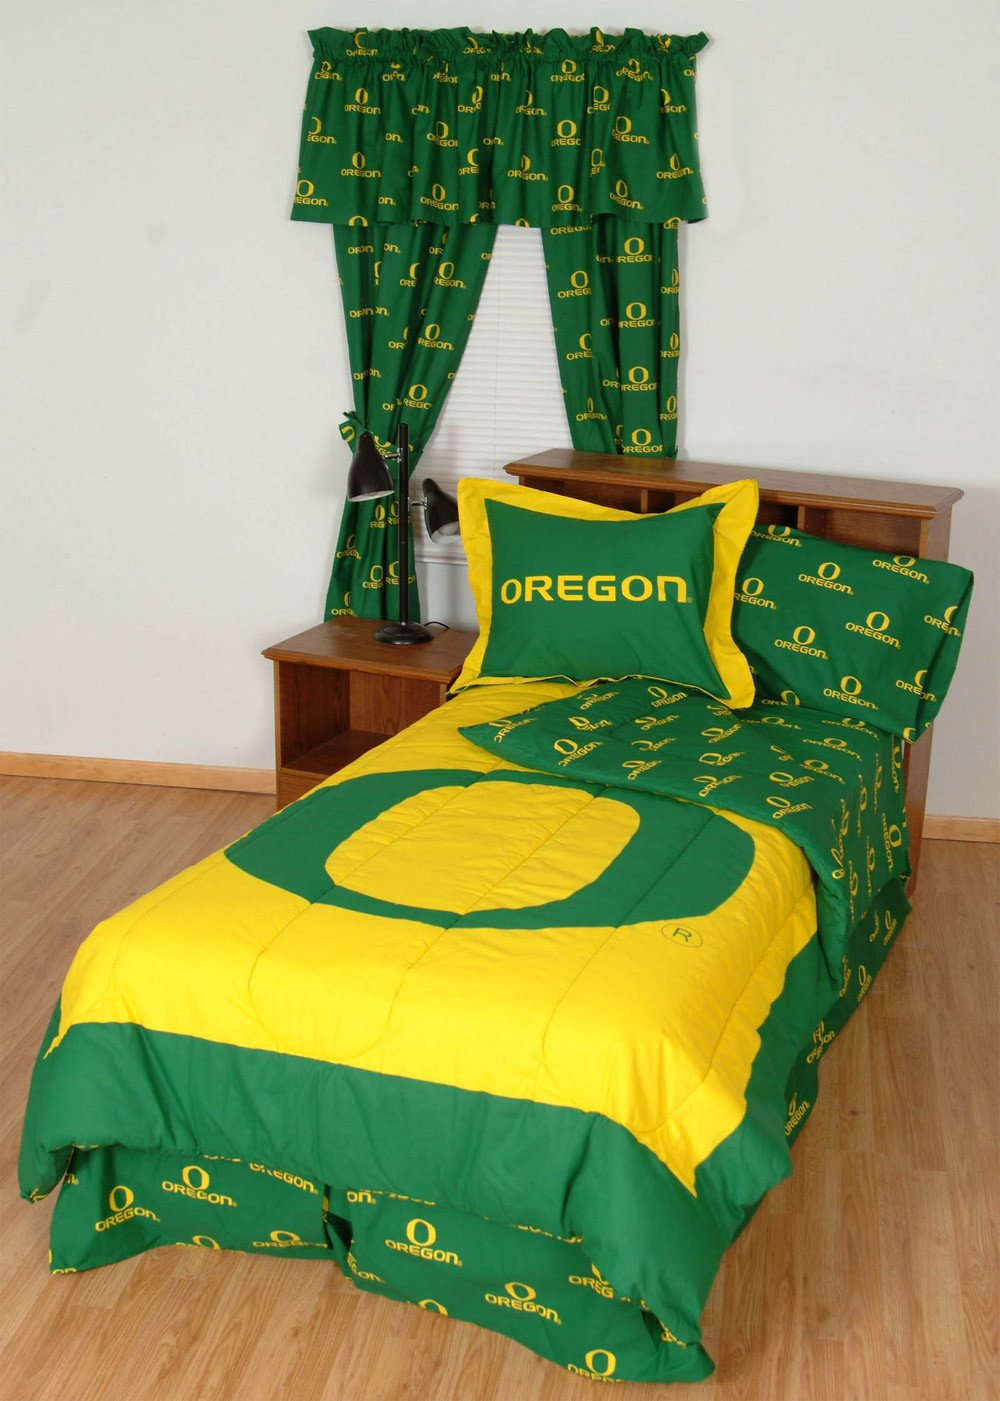 Oregon Bed in a Bag Twin - With Team Colored Sheets - OREBBTW by College Covers from College Covers